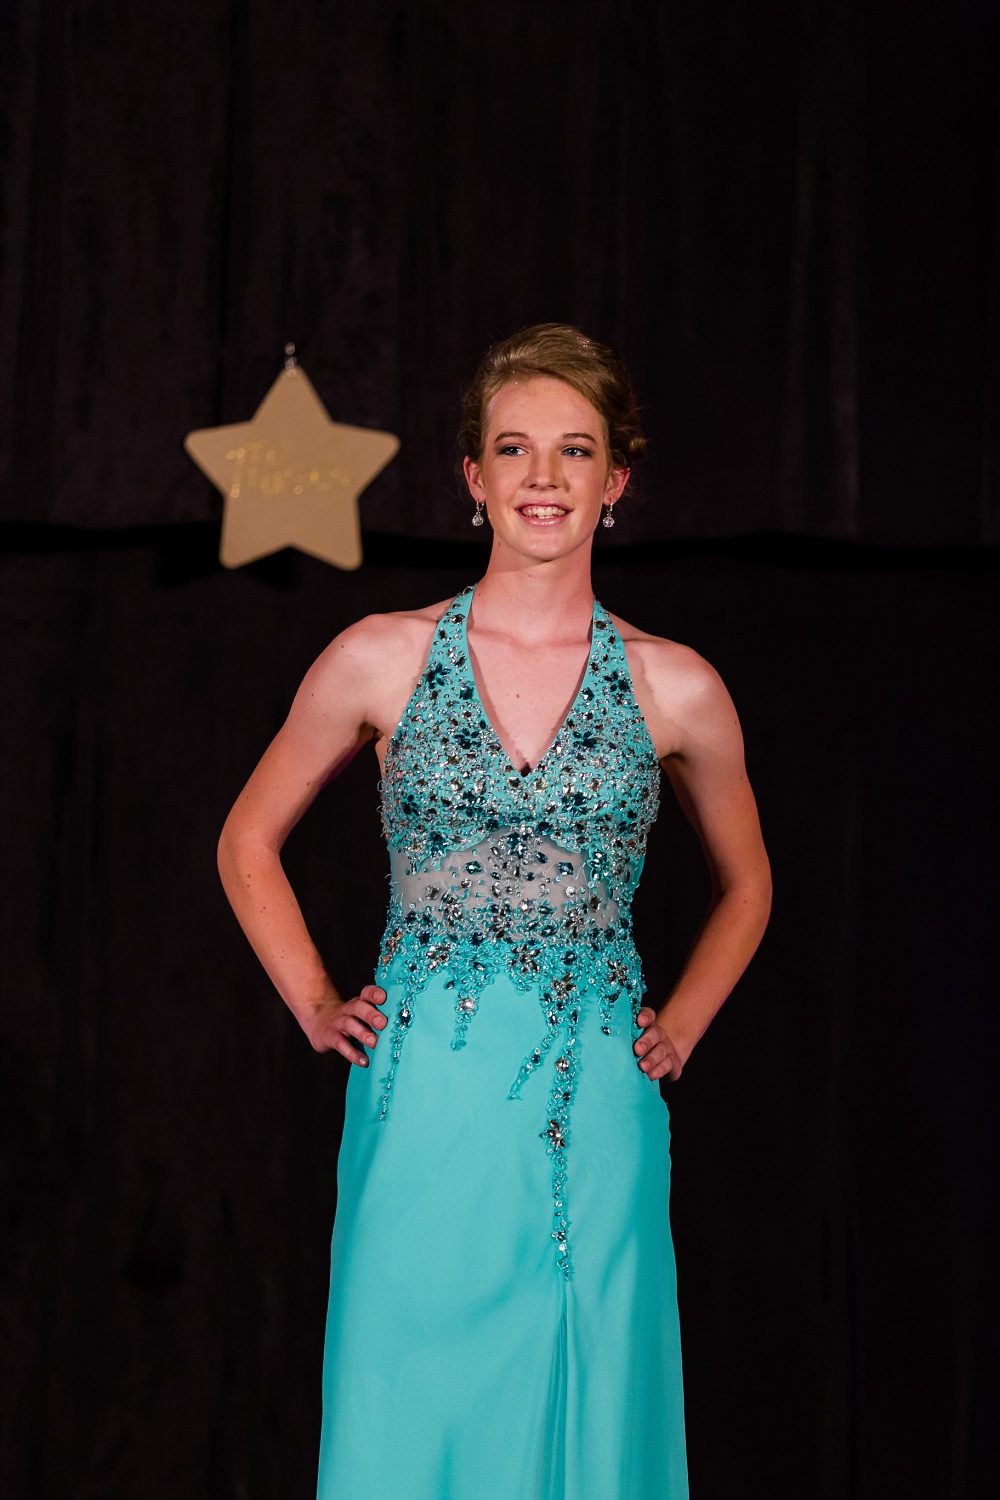 Miss Becker County Fair 2016 | Evening Gown Competition